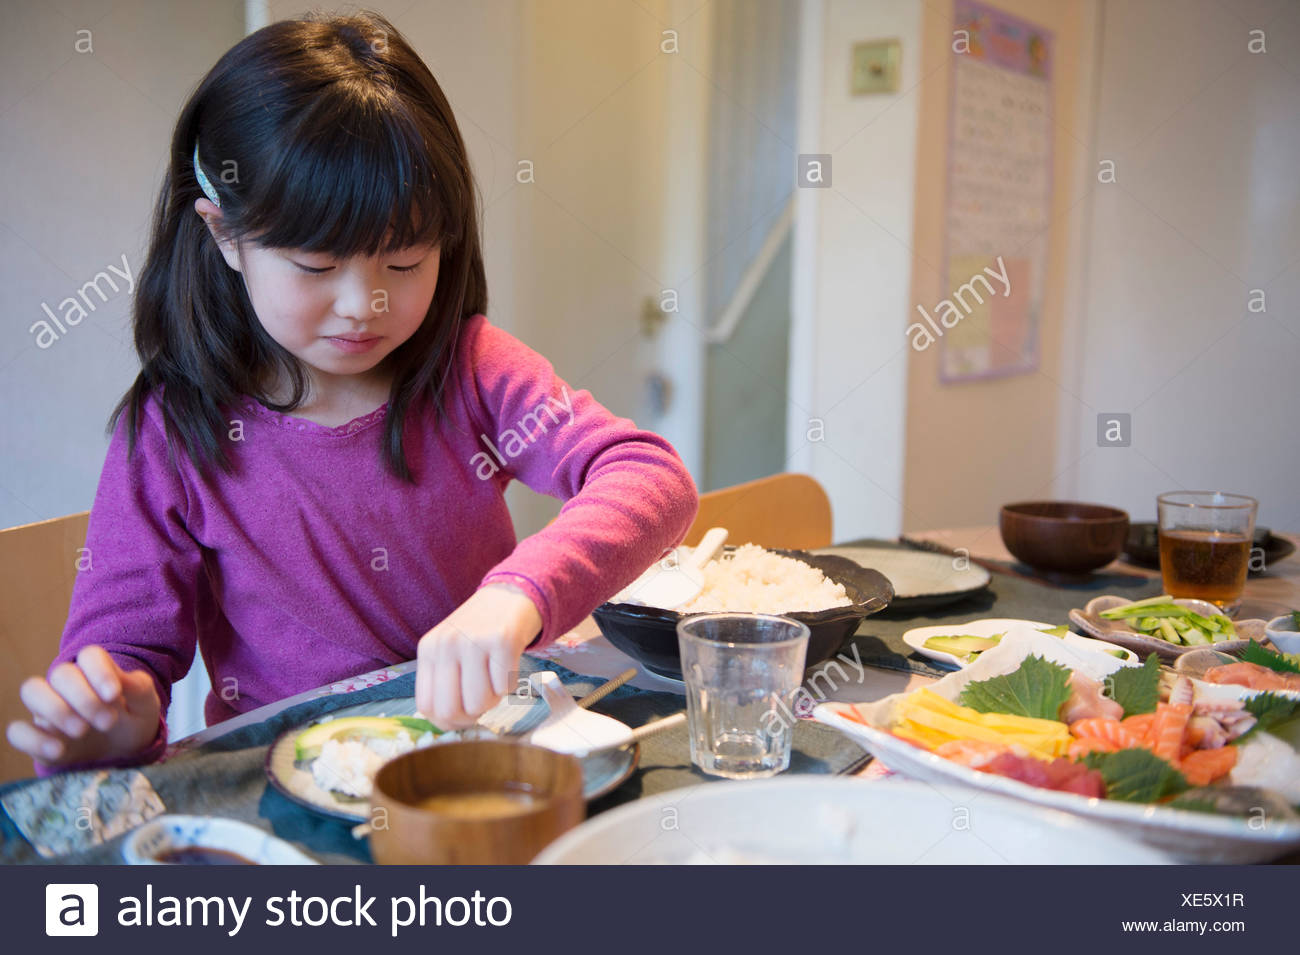 Girl selecting meal from dishes on dining table - Stock Image